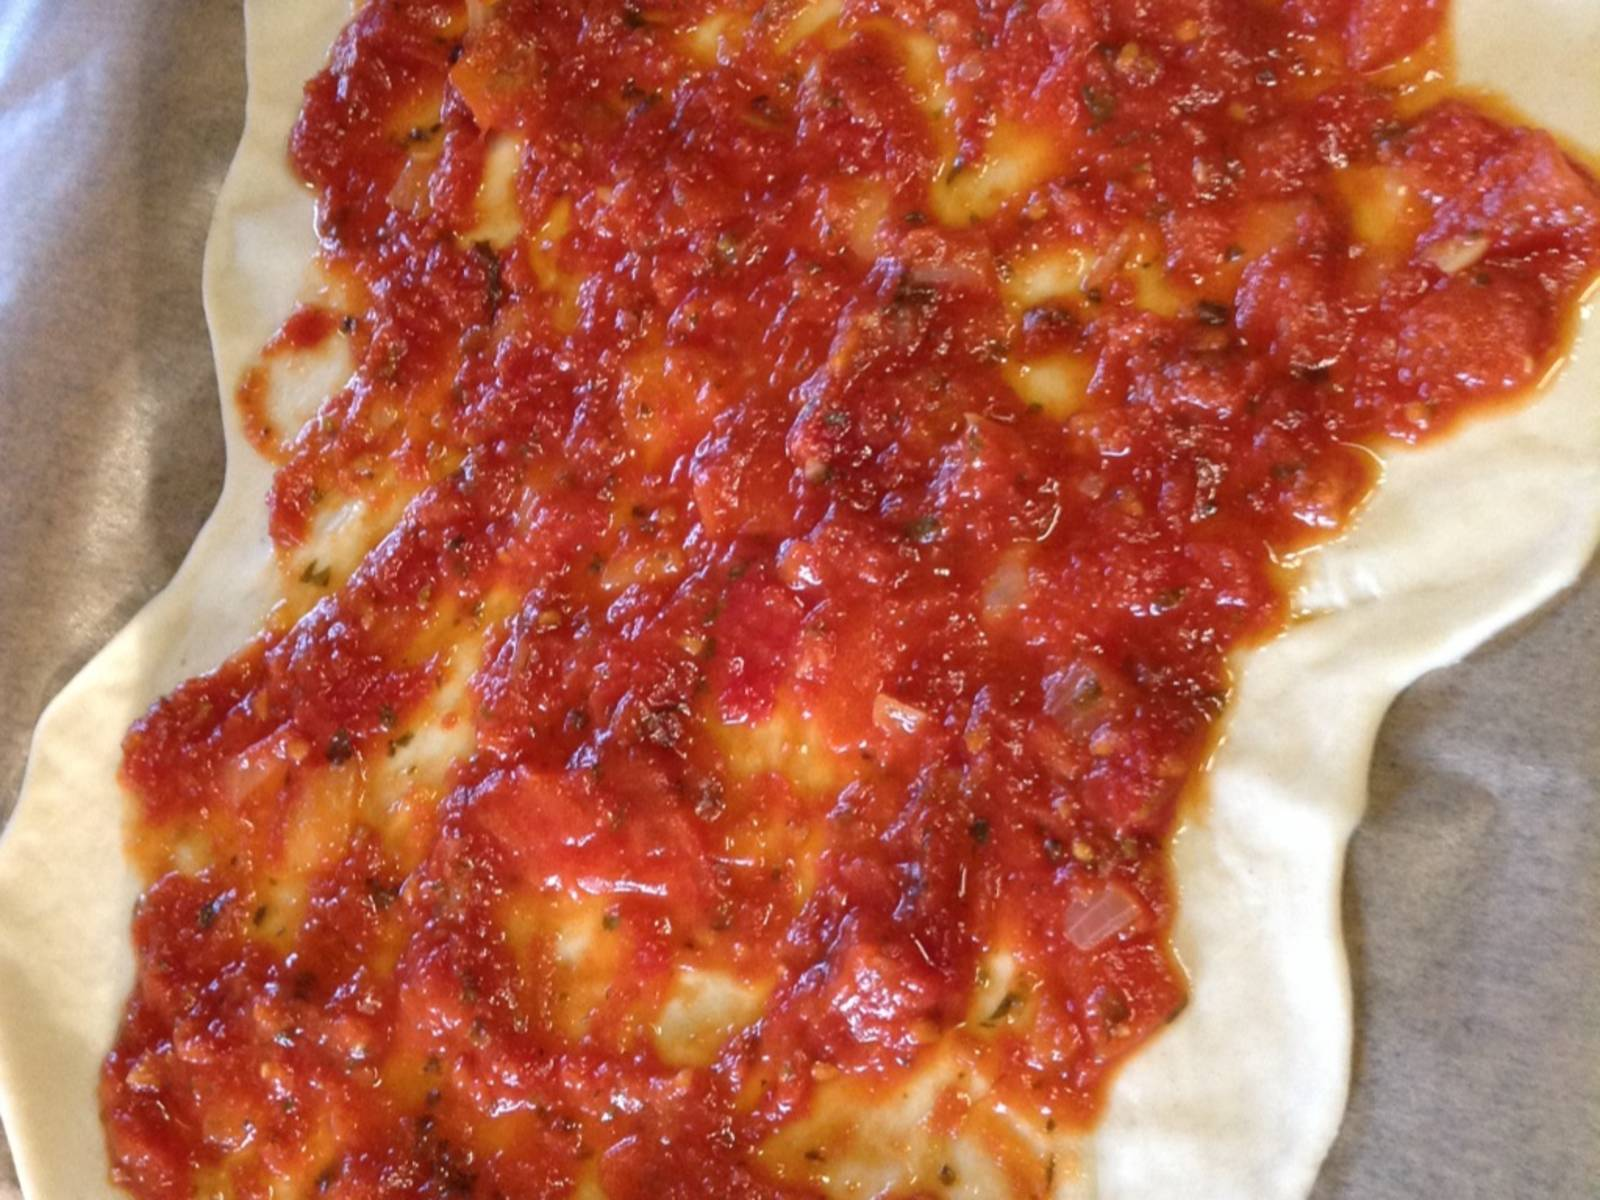 Cover dough with cold pizza sauce, leaving a 2-cm/0.8-in. thick crust. Make sure you don't apply too much sauce or leave gaps. Use more or less sauce if needed.